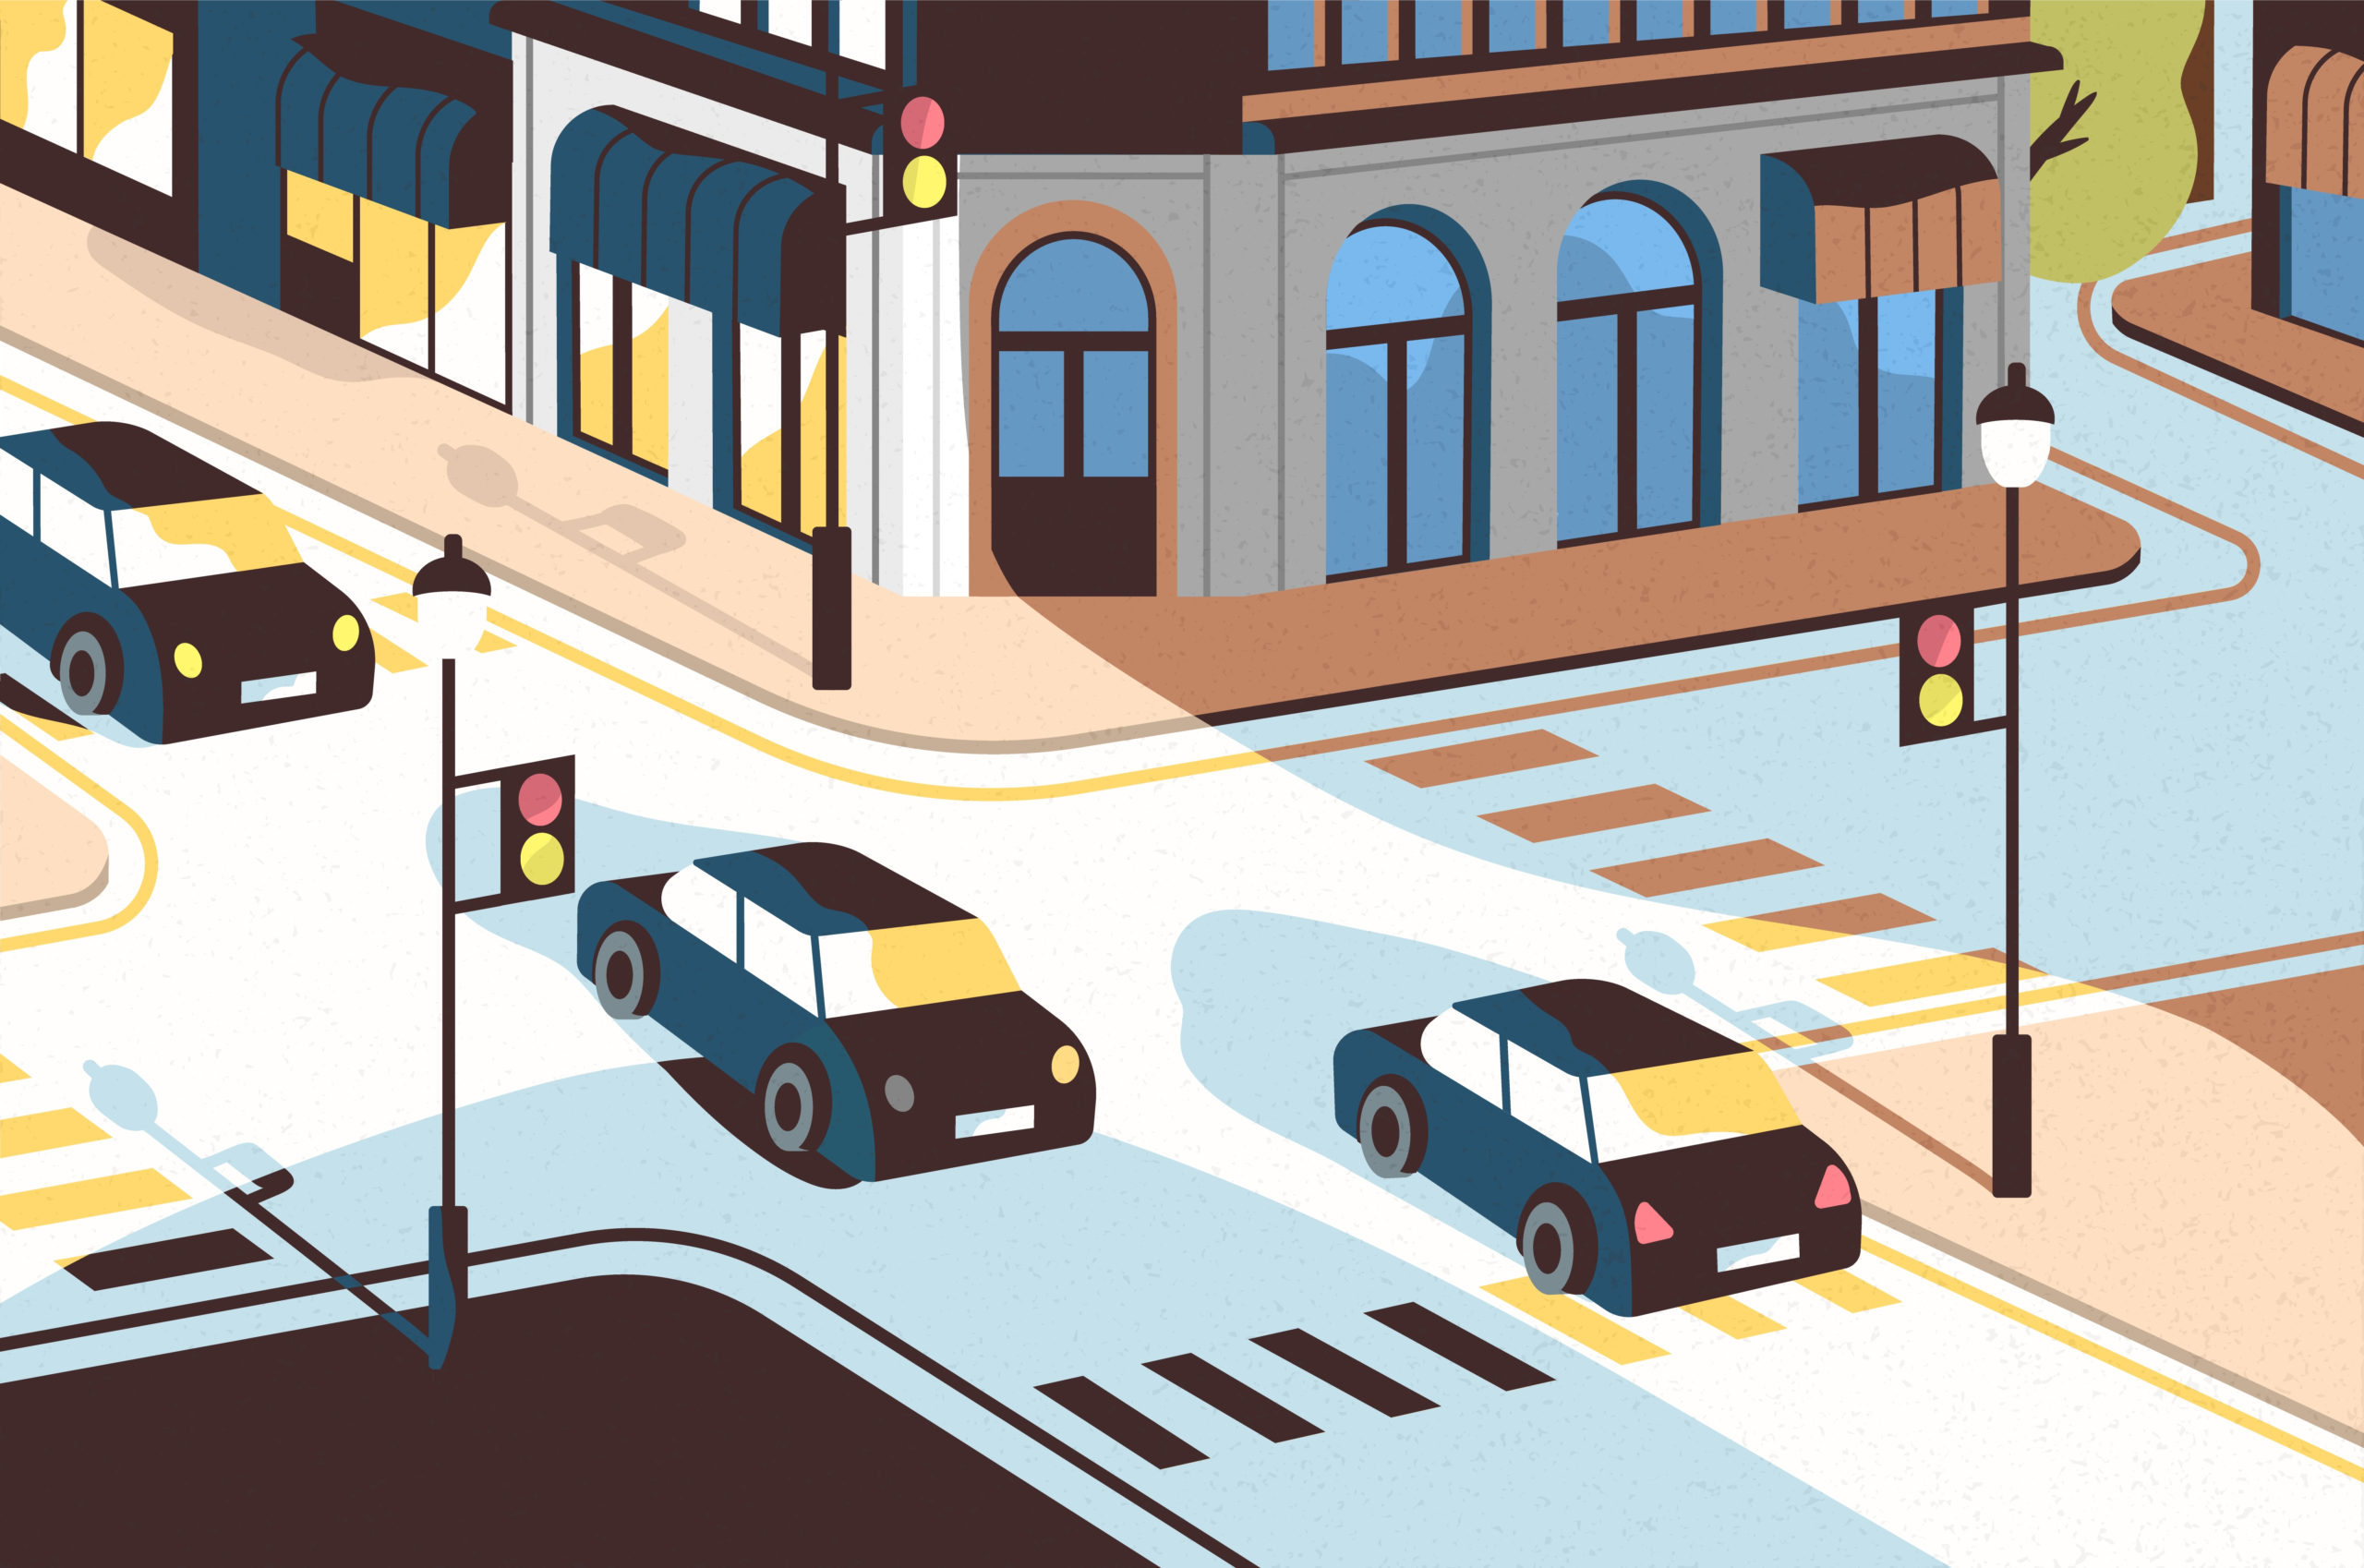 cars passing through an intersection